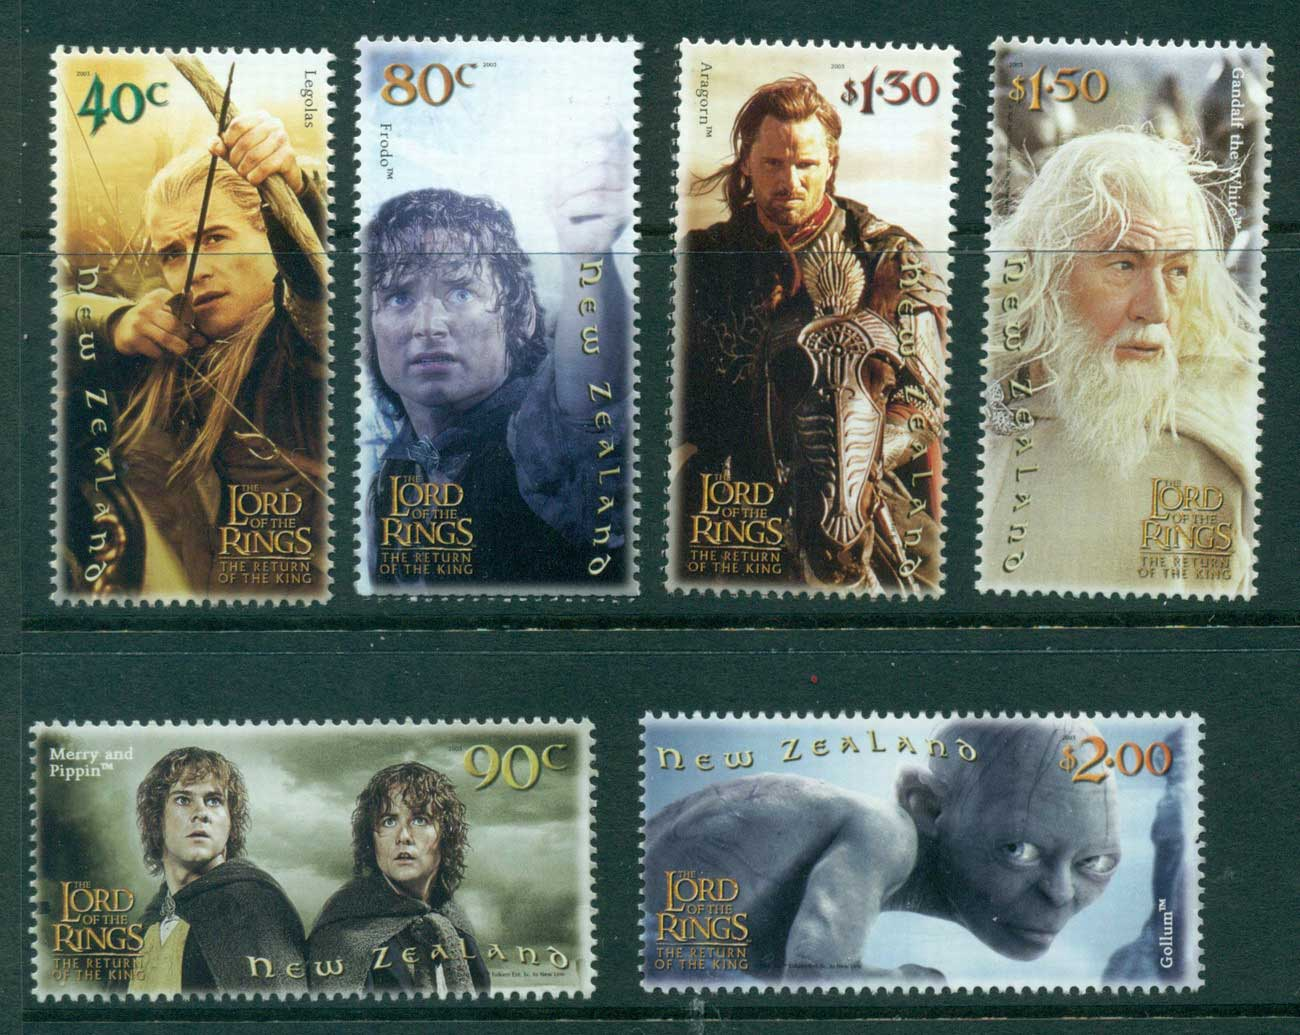 New Zealand 2003 Return of the King MUH Lot28778